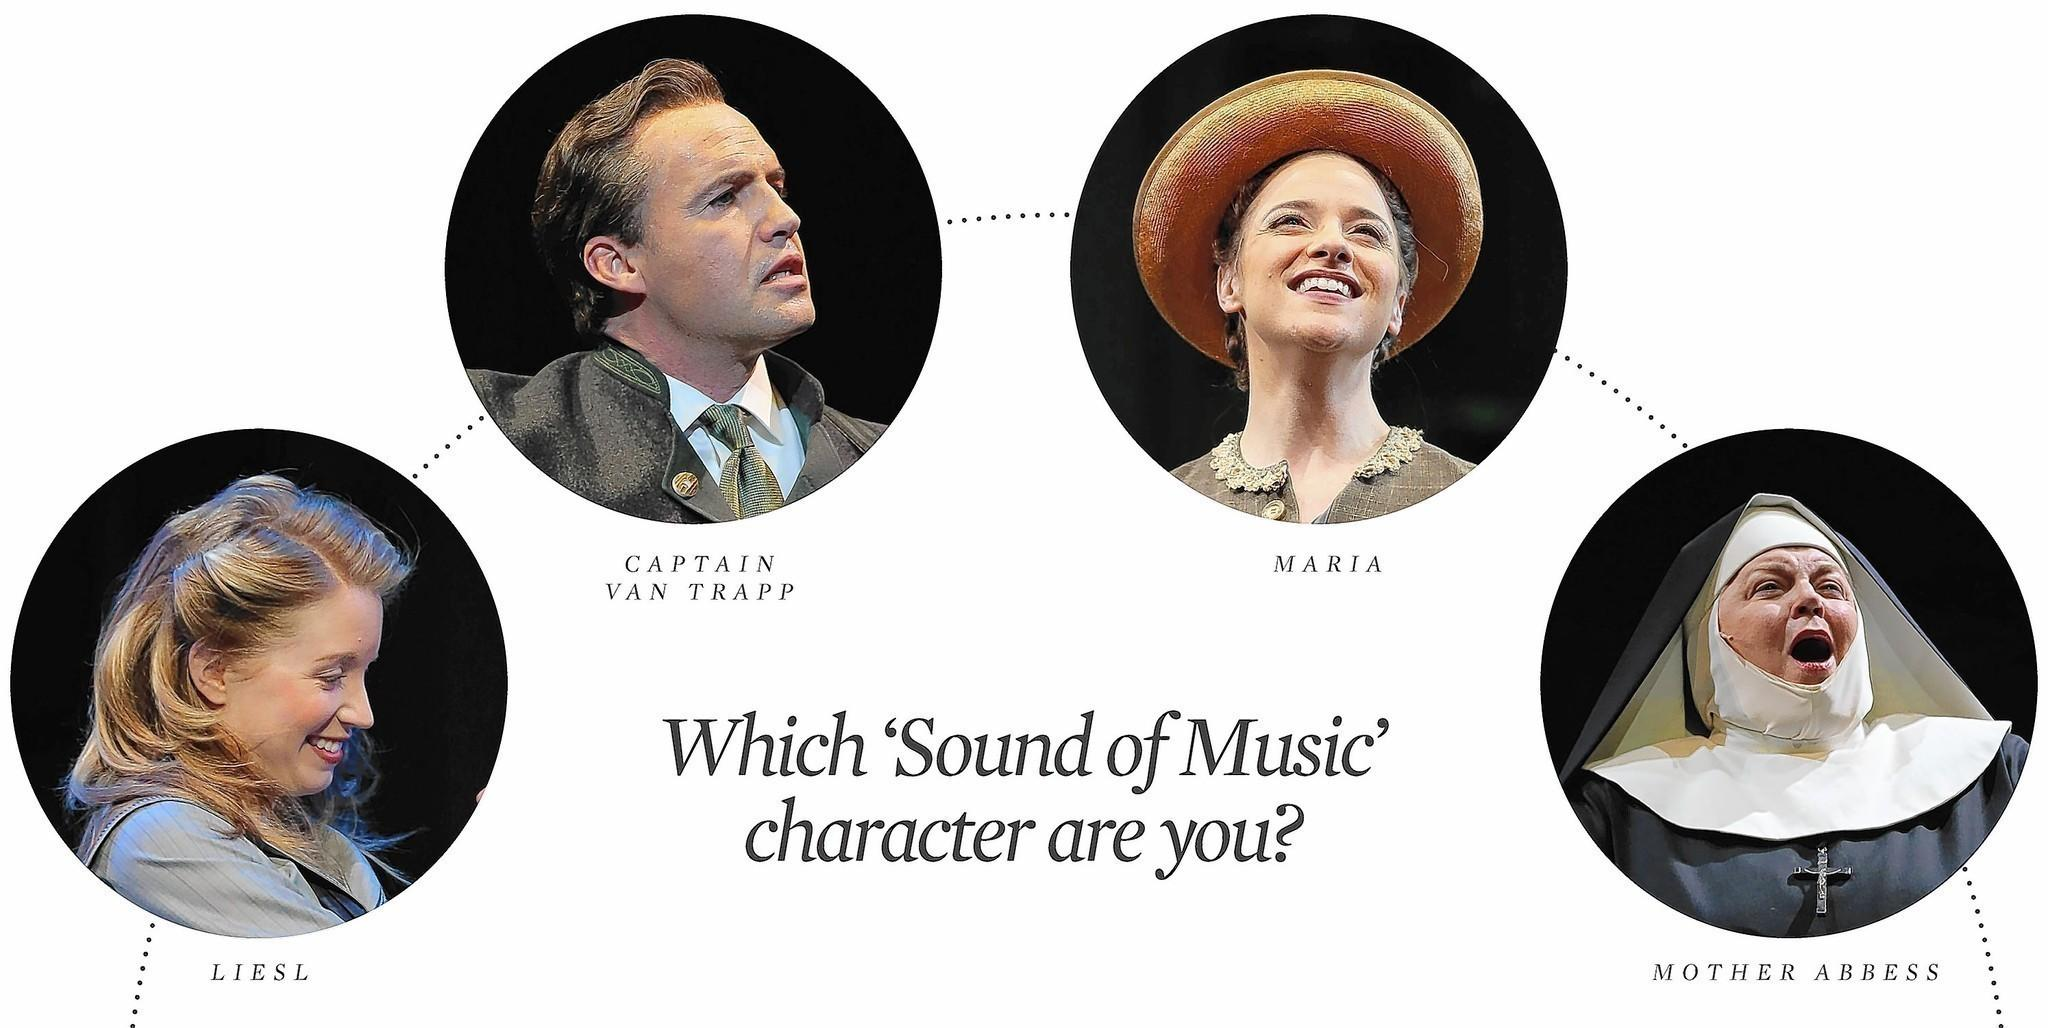 """Which 'Sound of Music' character are you?"" quiz created by the Lyric Opera of Chicago."